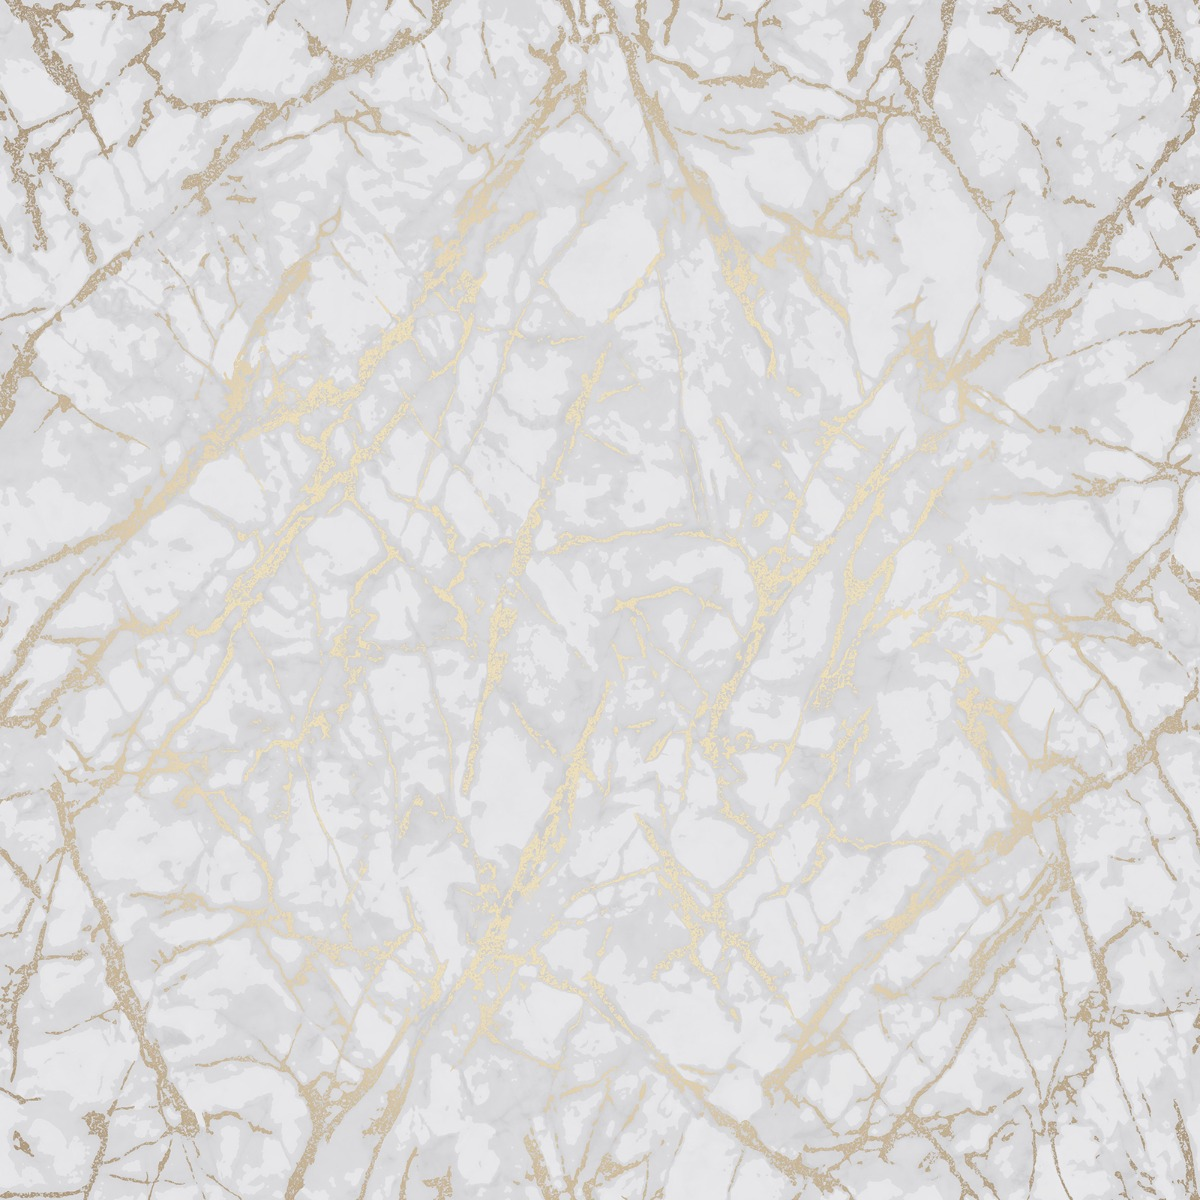 Metallic Marble Wallpaper White and Gold